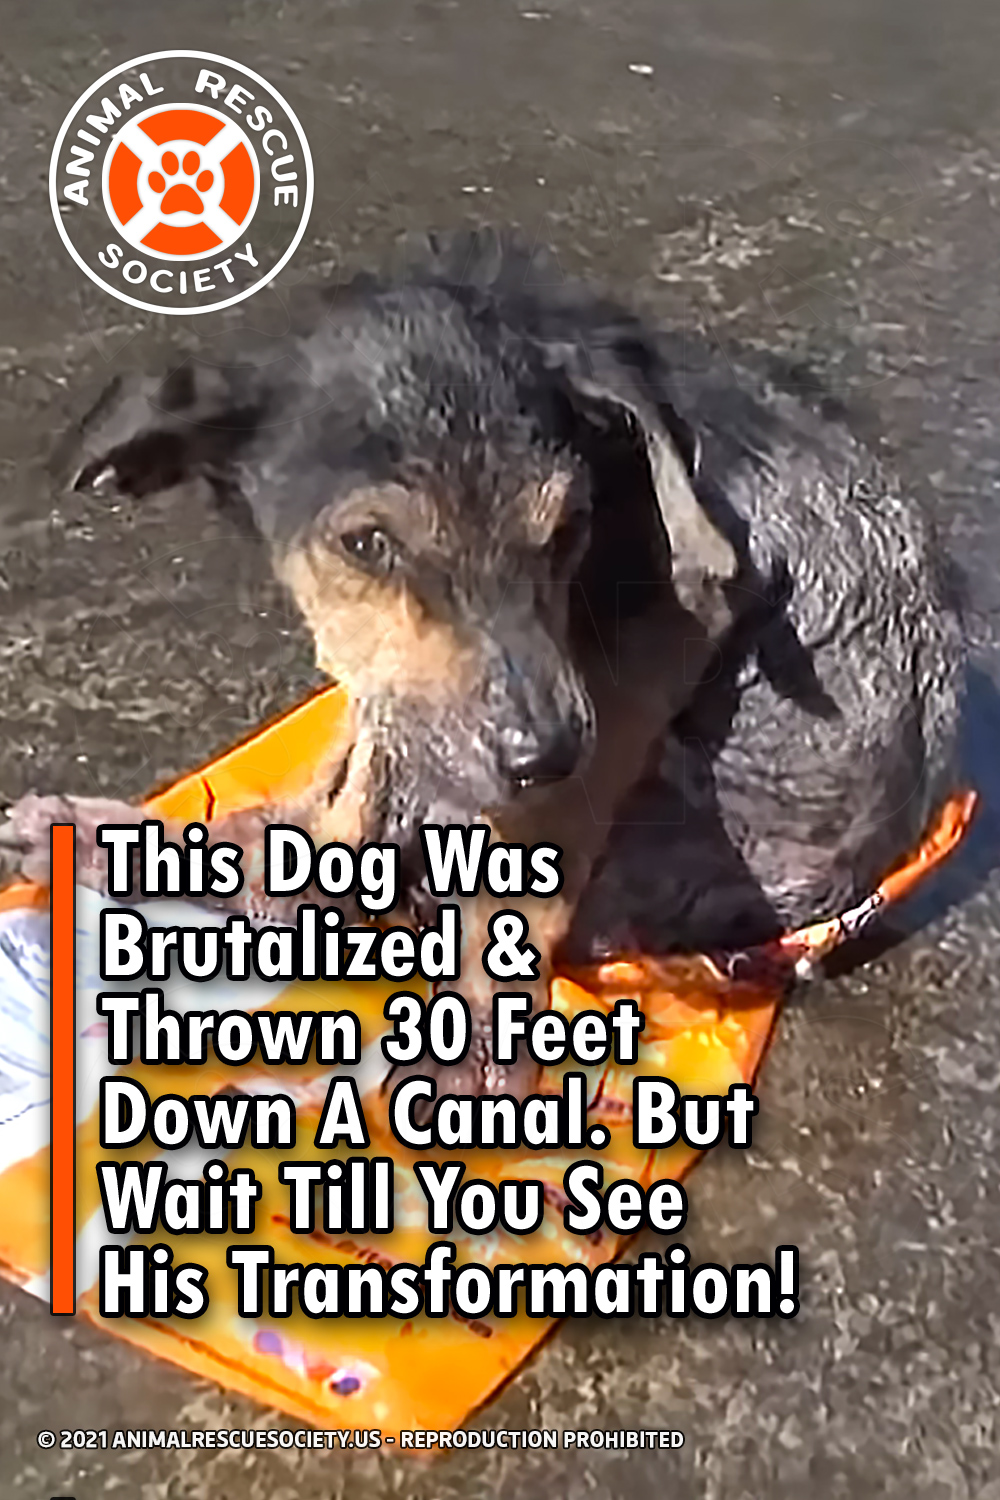 This Dog Was Brutalized & Thrown 30 Feet Down A Canal. But Wait Till You See His Transformation!